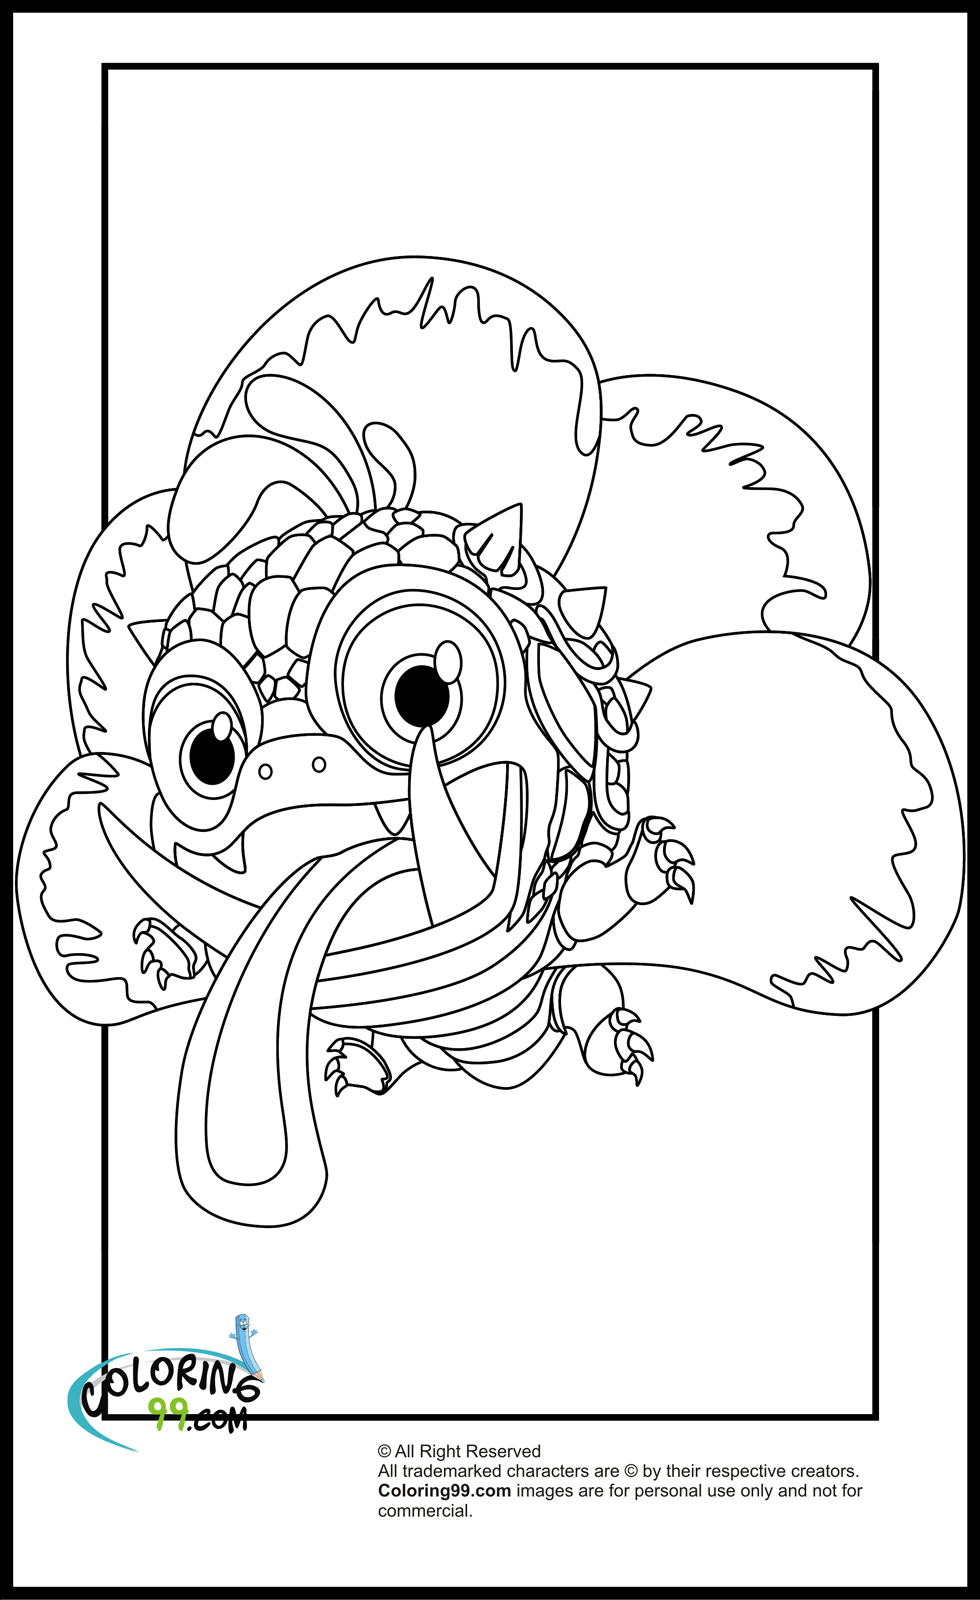 skylander wrecking ball coloring pages | Skylanders Magic Element Coloring Pages | Team colors